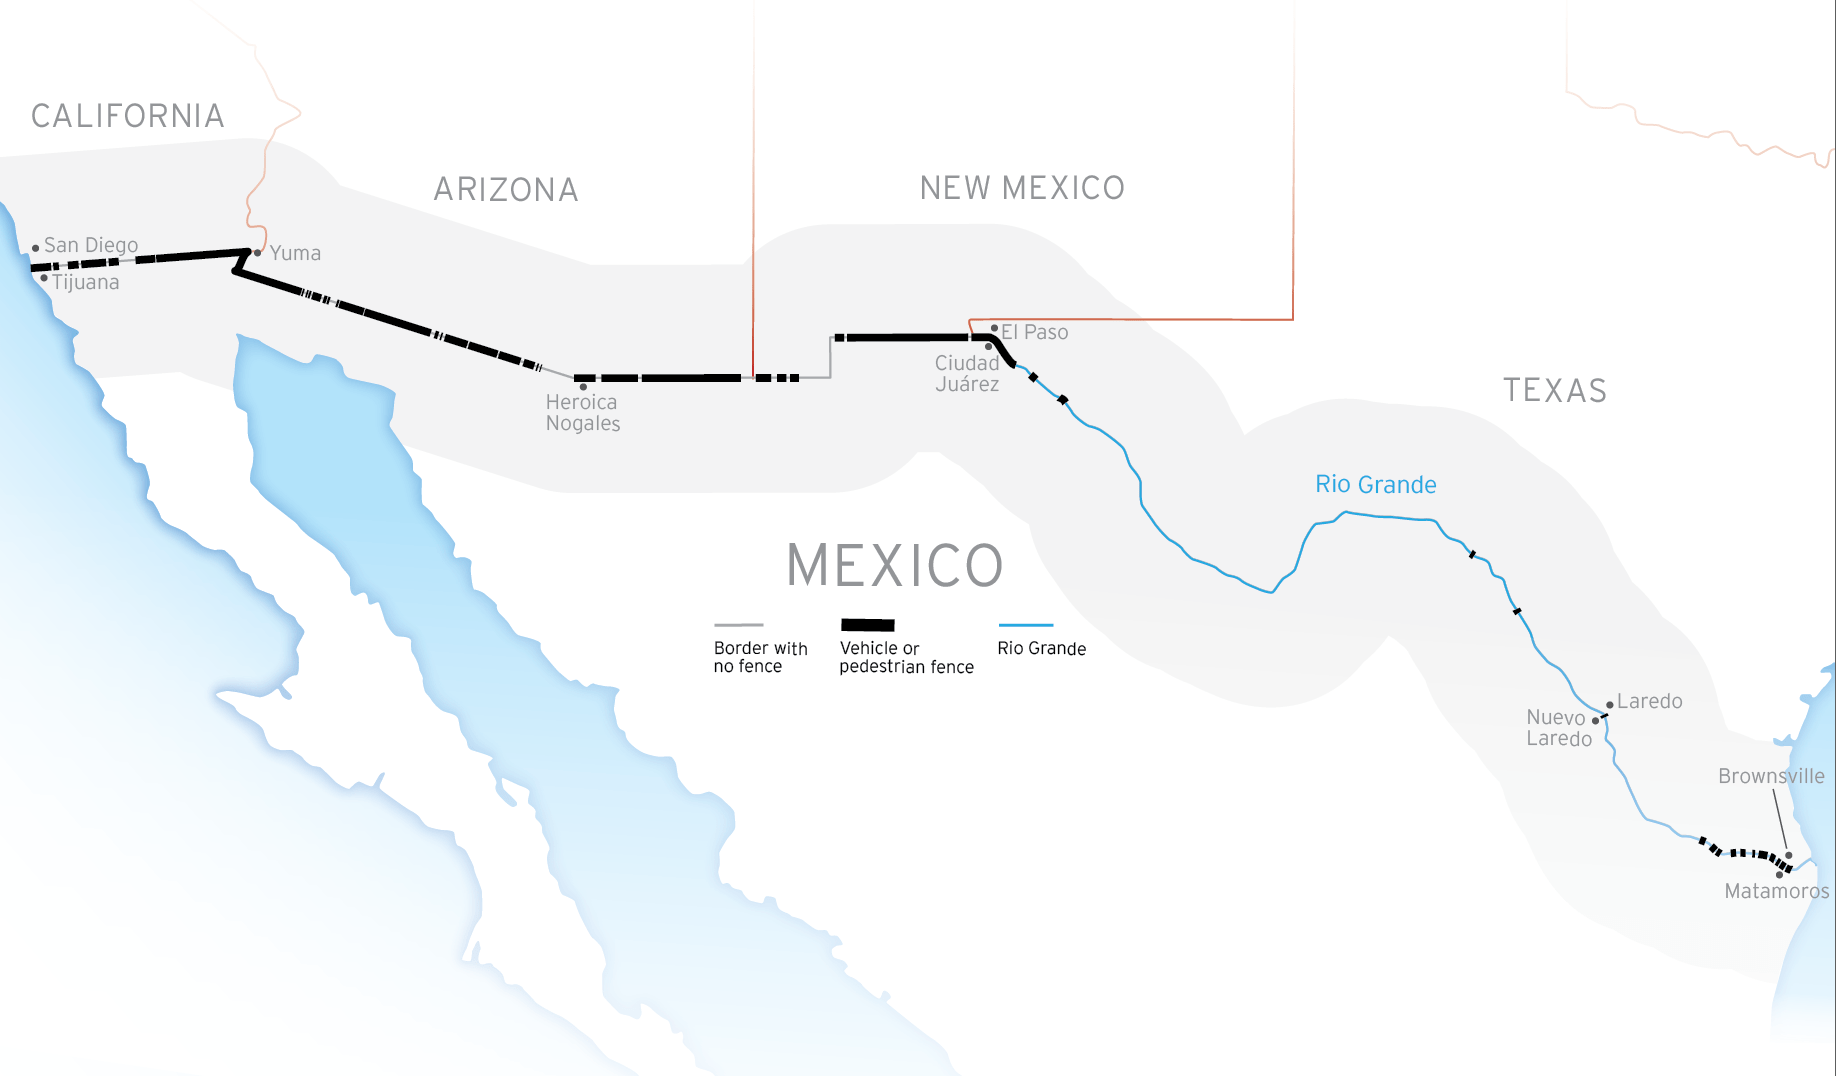 Map Showing The Composition Of The Border Border With No Fence Vehicle Or Pedestrian